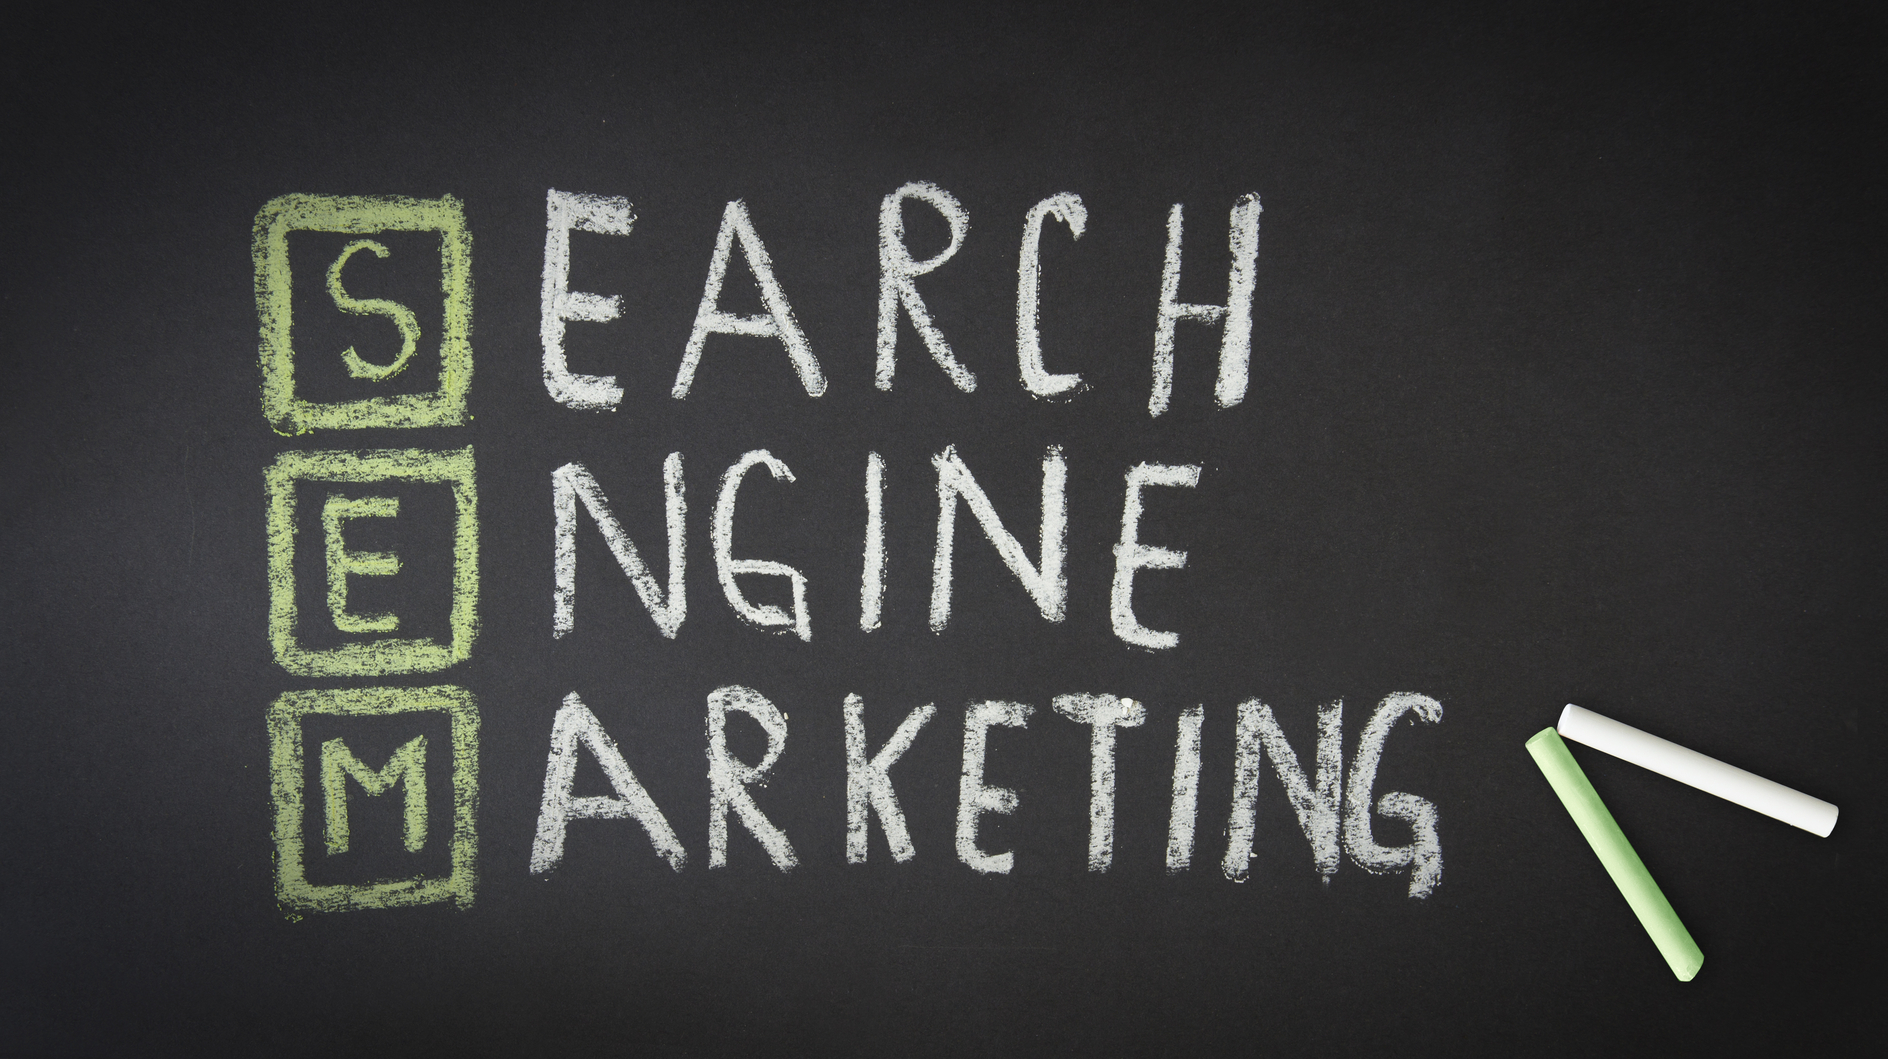 Search engine marketing strategies: Part I